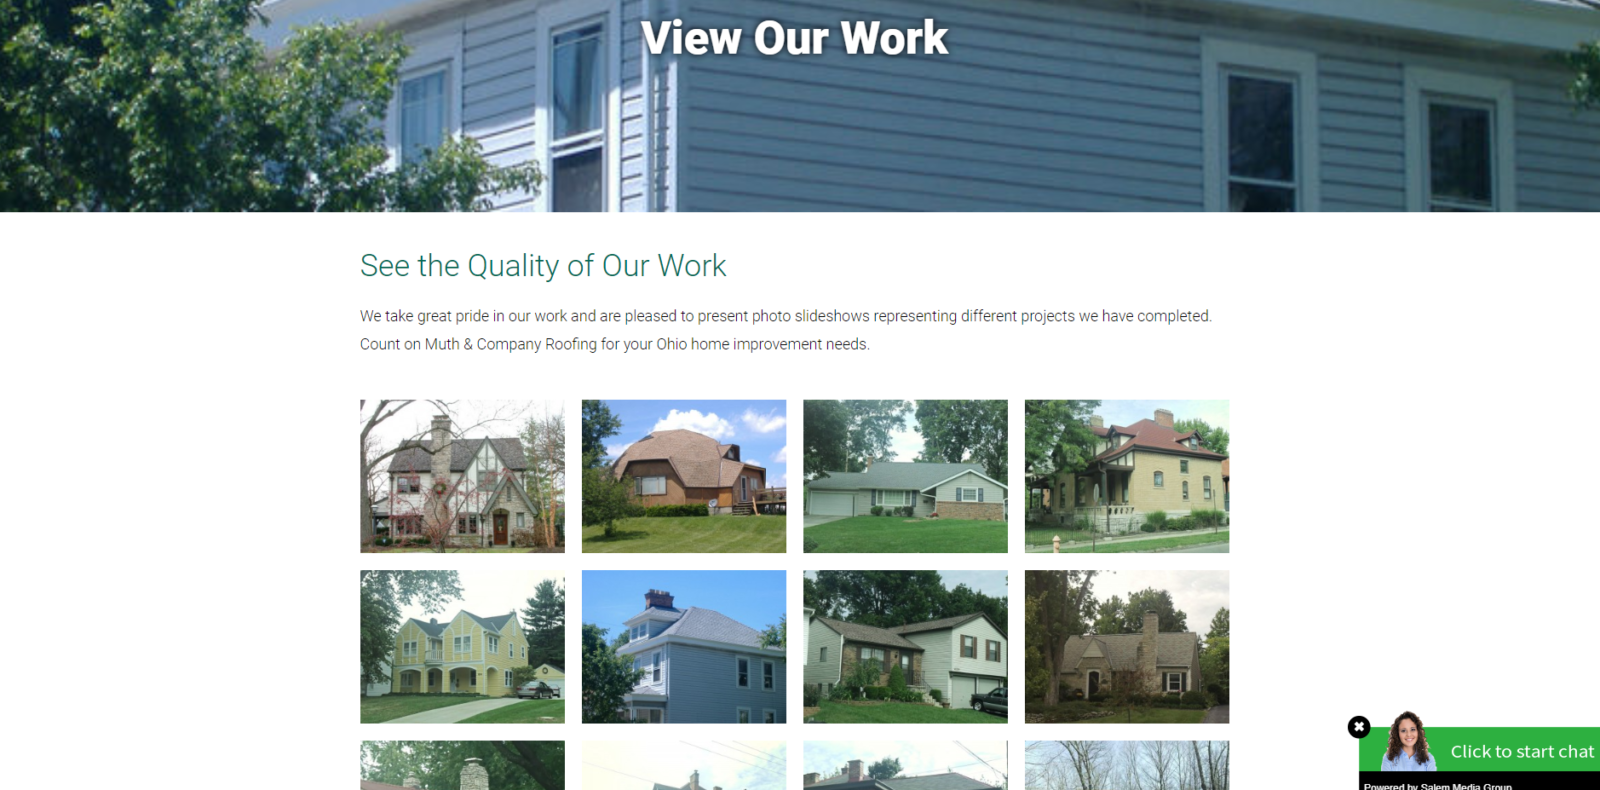 wordpress site design muth & company roofers our work